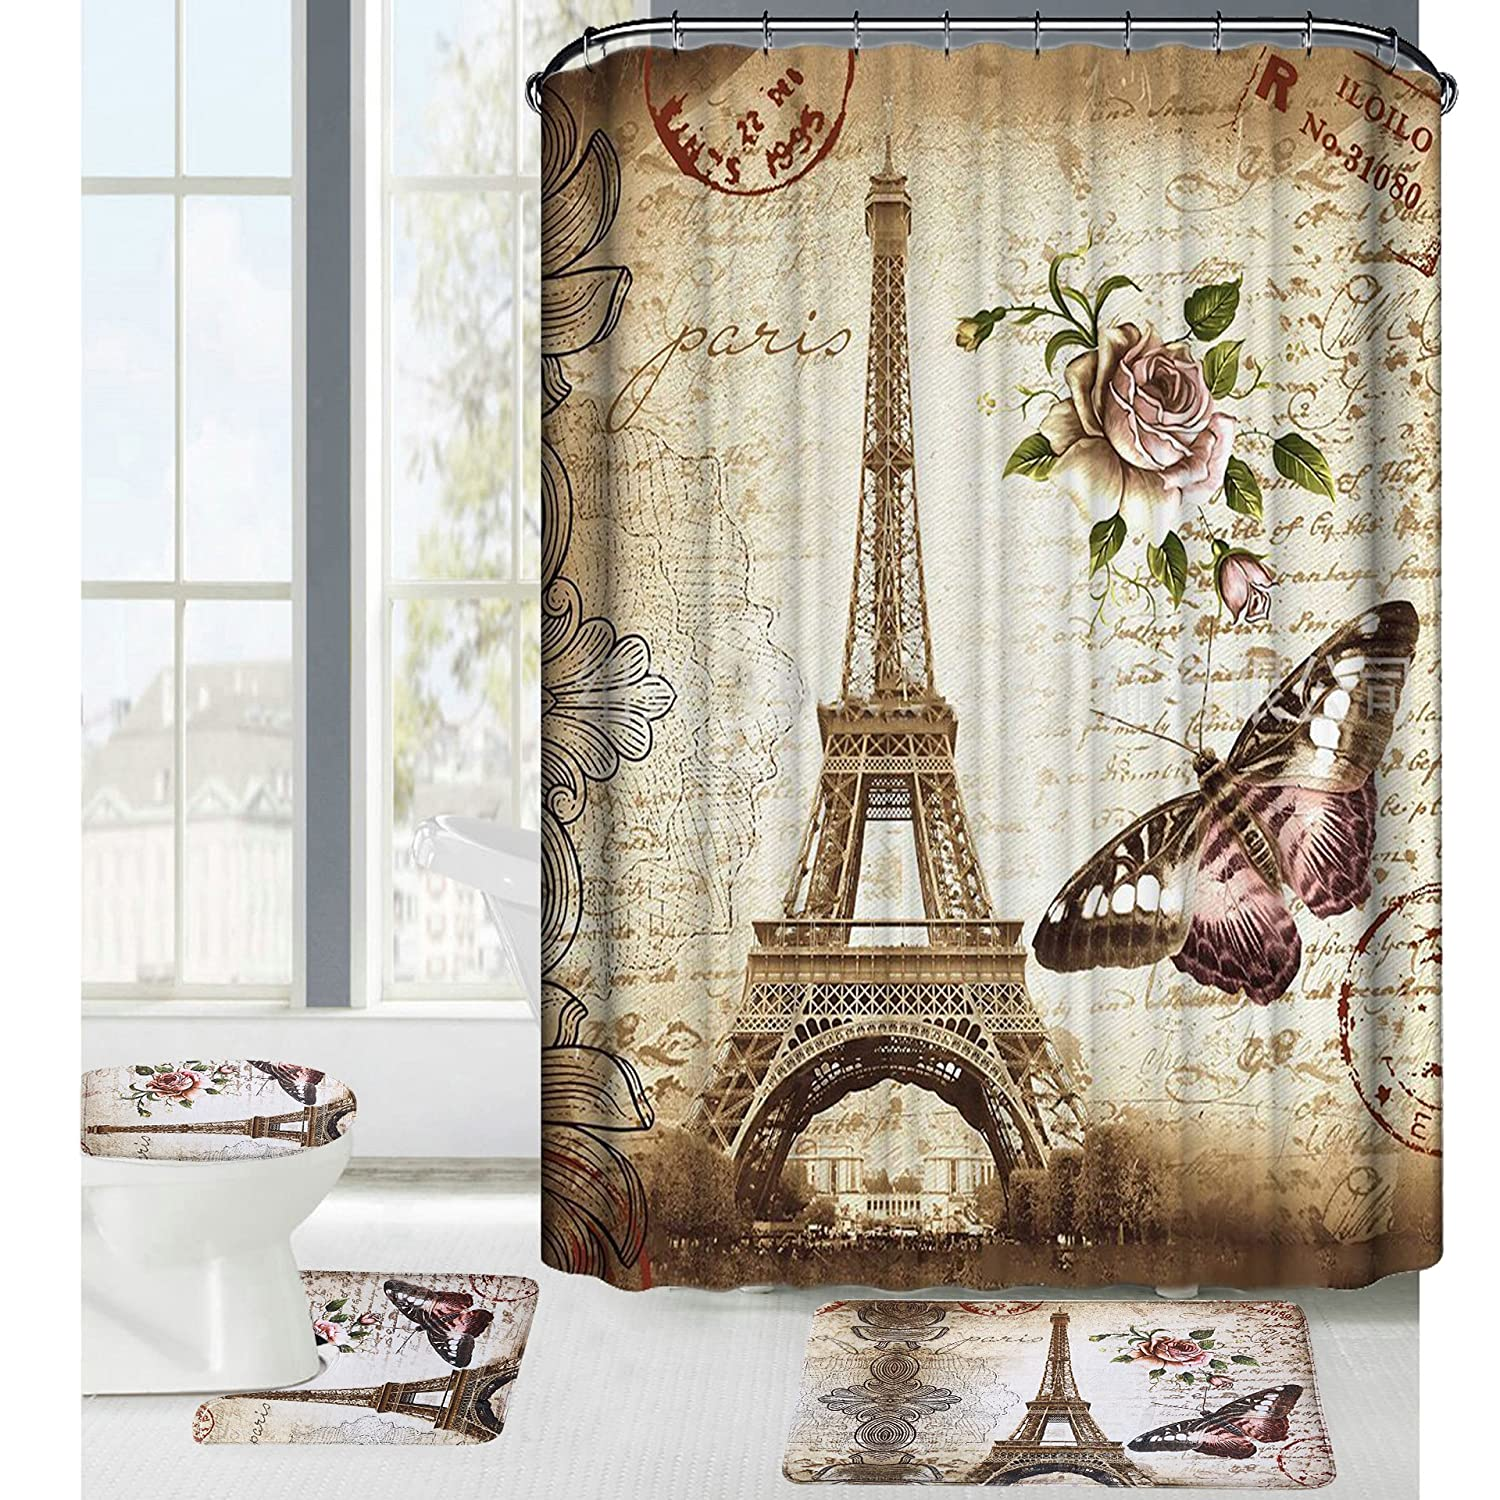 Deco Salle De Bain Fille ~ Amazon Com Amagical 16 Piece Paris Eiffel Tower Pattern Shower